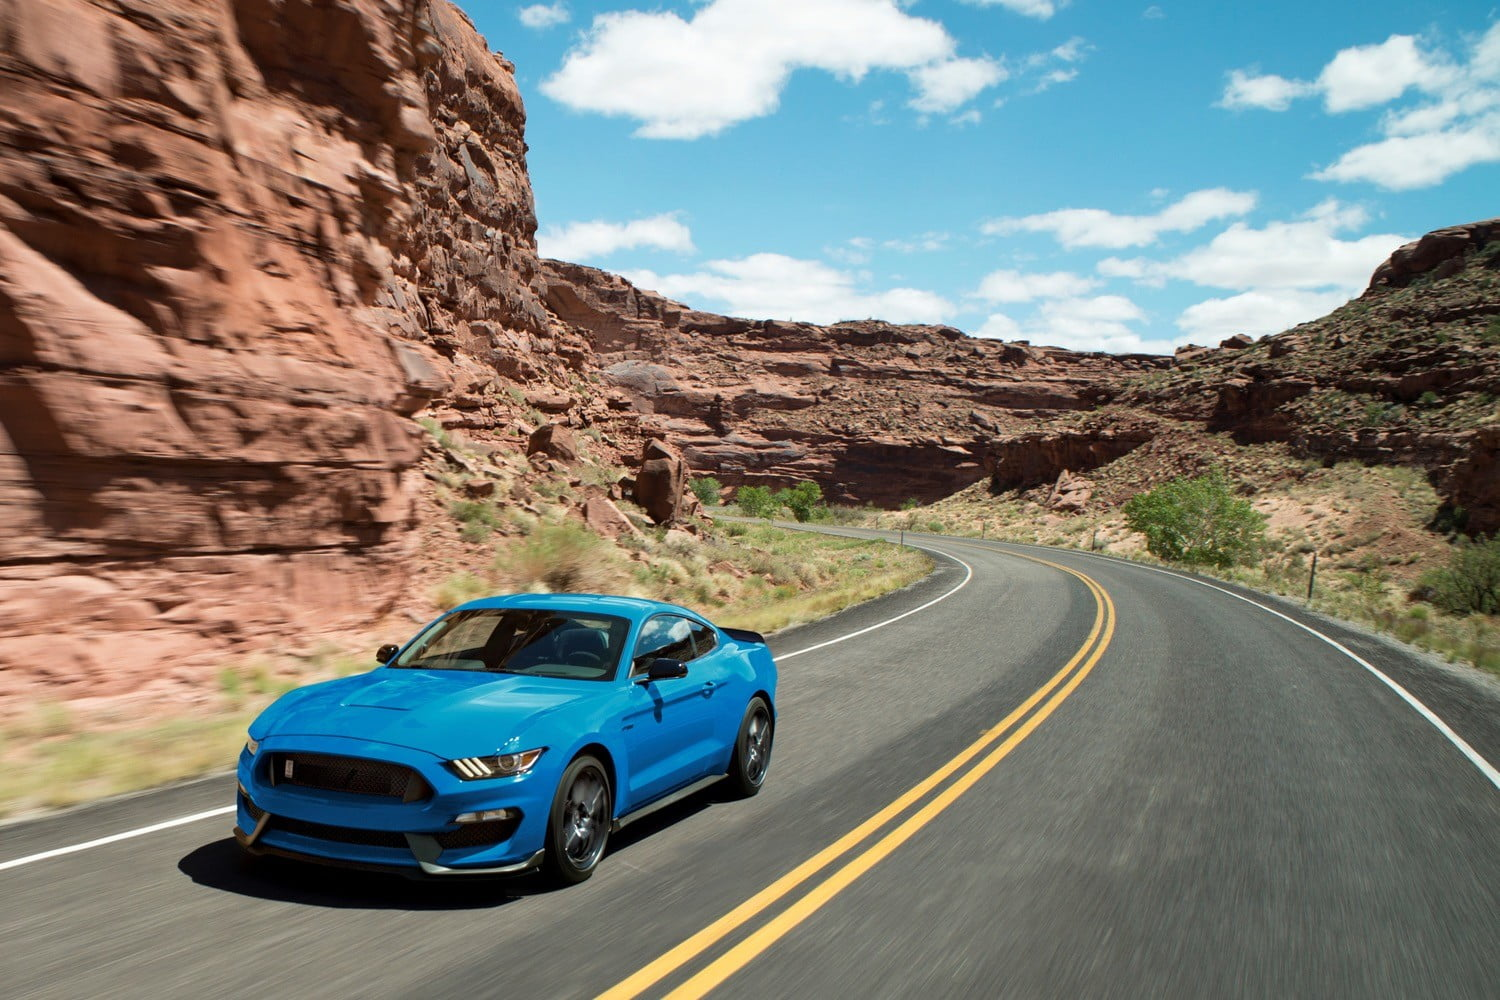 2018 Ford Mustang News Specs Performance Pictures Digital Trends 87 Chevy Dual Tank Schematic